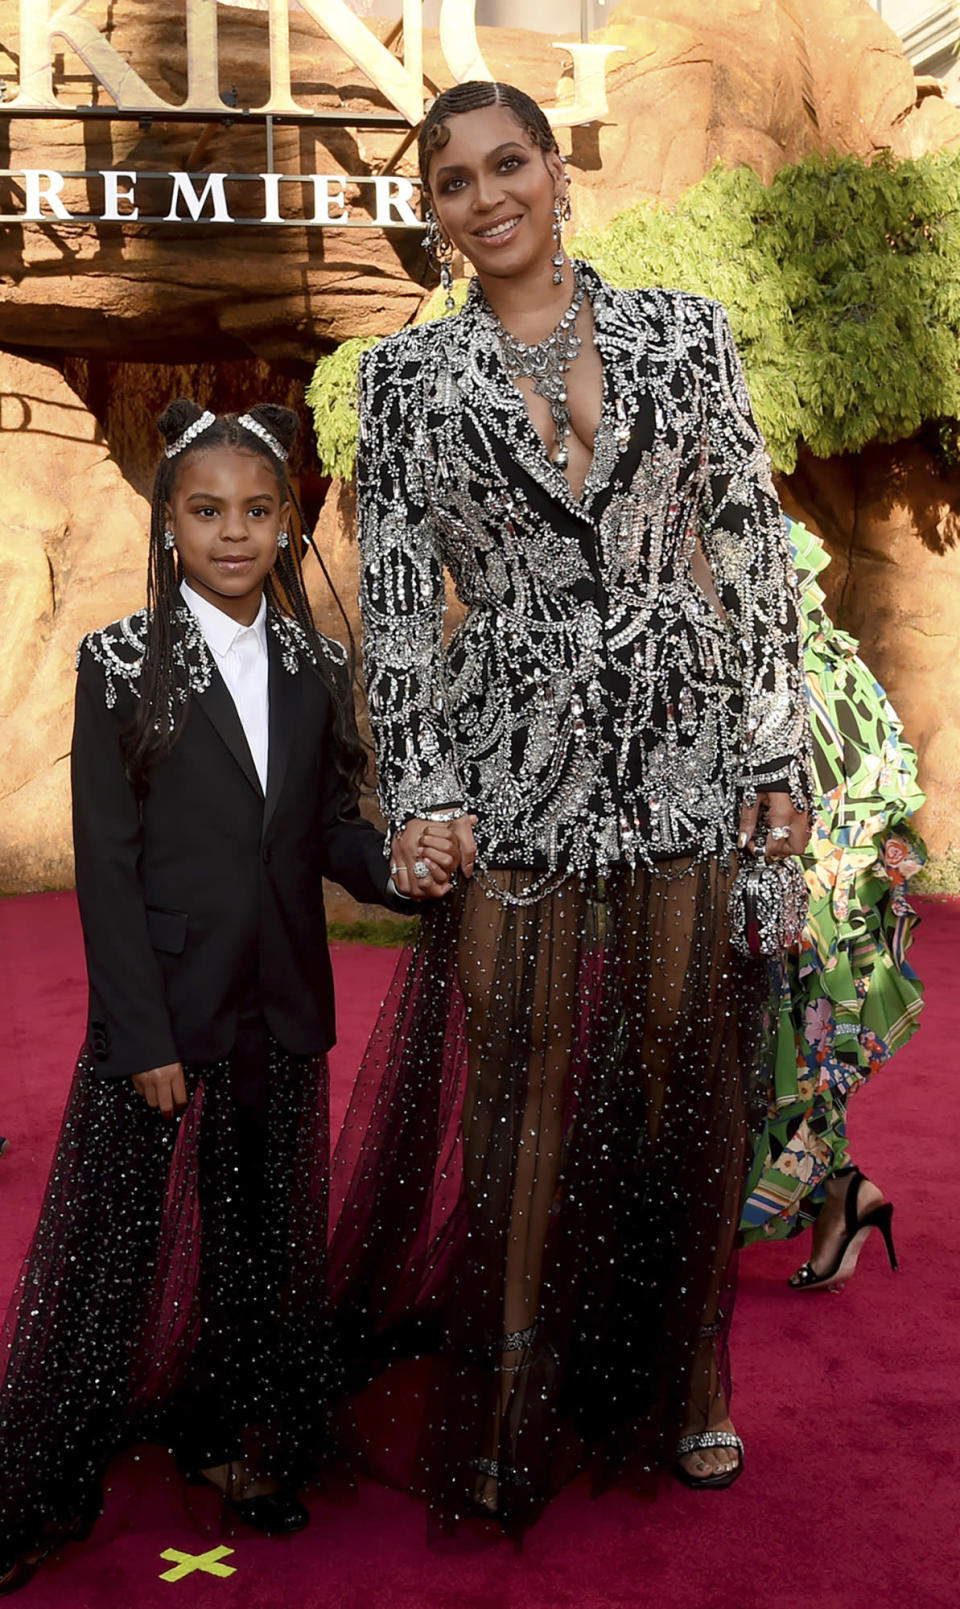 """FILE - In this July 9, 2019 file photo, Beyonce, right, and her daughter Blue Ivy Carter arrive at the world premiere of """"The Lion King"""" at the Dolby Theatre in Los Angeles. At just 7, Blue Ivy Carter is an award-winning songwriter. Jay-Z and Beyoncé's daughter won the Ashford & Simpson Songwriter's Award at the Soul Train Awards on Sunday, Nov. 17 for co-writing her mom's hit """"Brown Skin Girl,"""" a song celebrating dark- and brown-skinned women. Ivy gives a vocal performance that opens and closes the song, which also features Wizkid and Saint Jhn. (Photo by Chris Pizzello/Invision/AP, File)"""